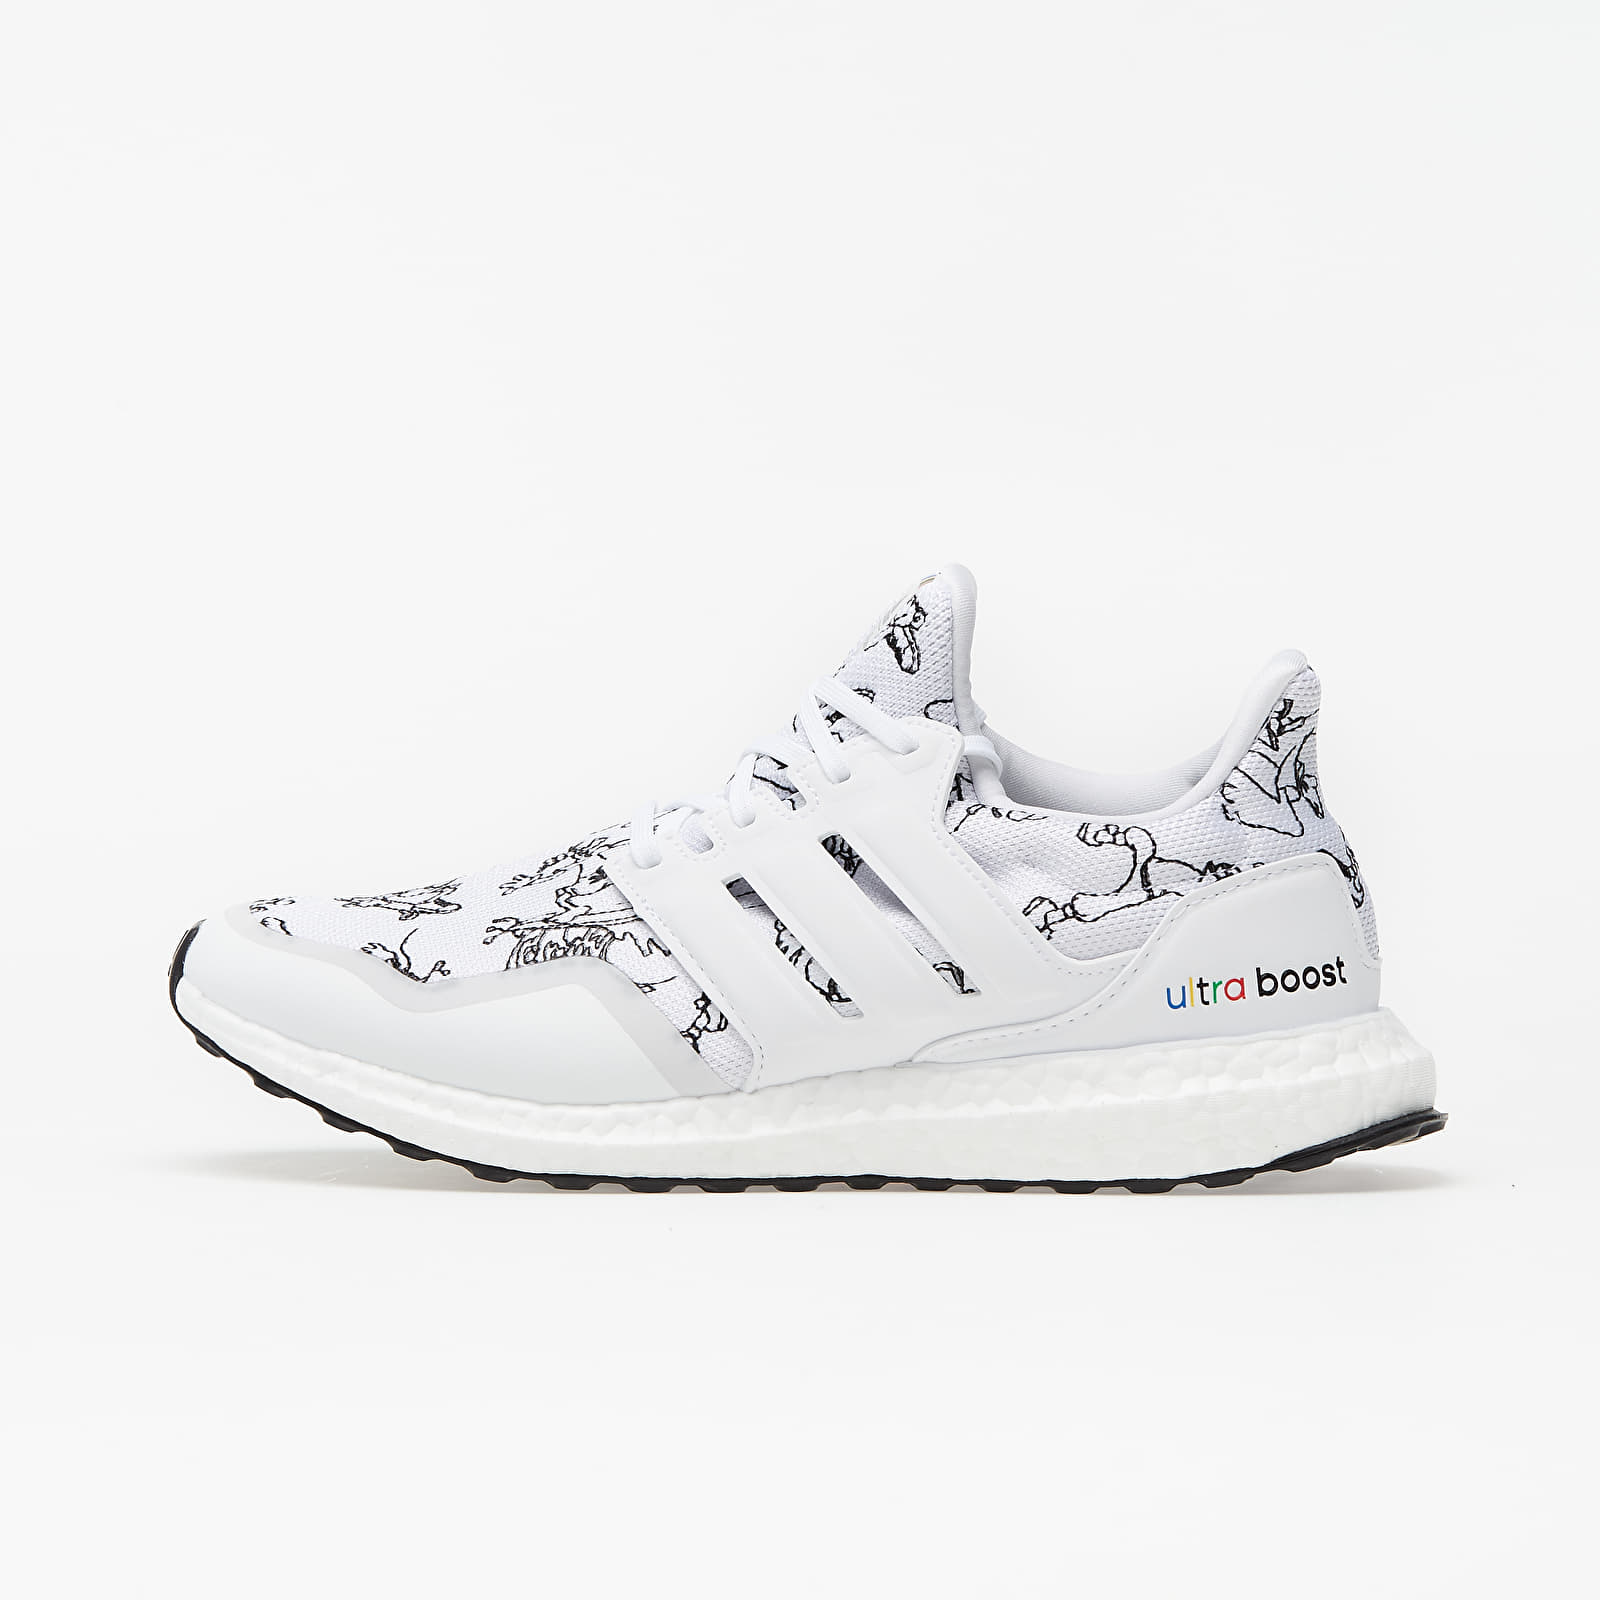 Herenschoenen adidas x Disney UltraBOOST DNA Ftw White/ Ftw White/ Blue